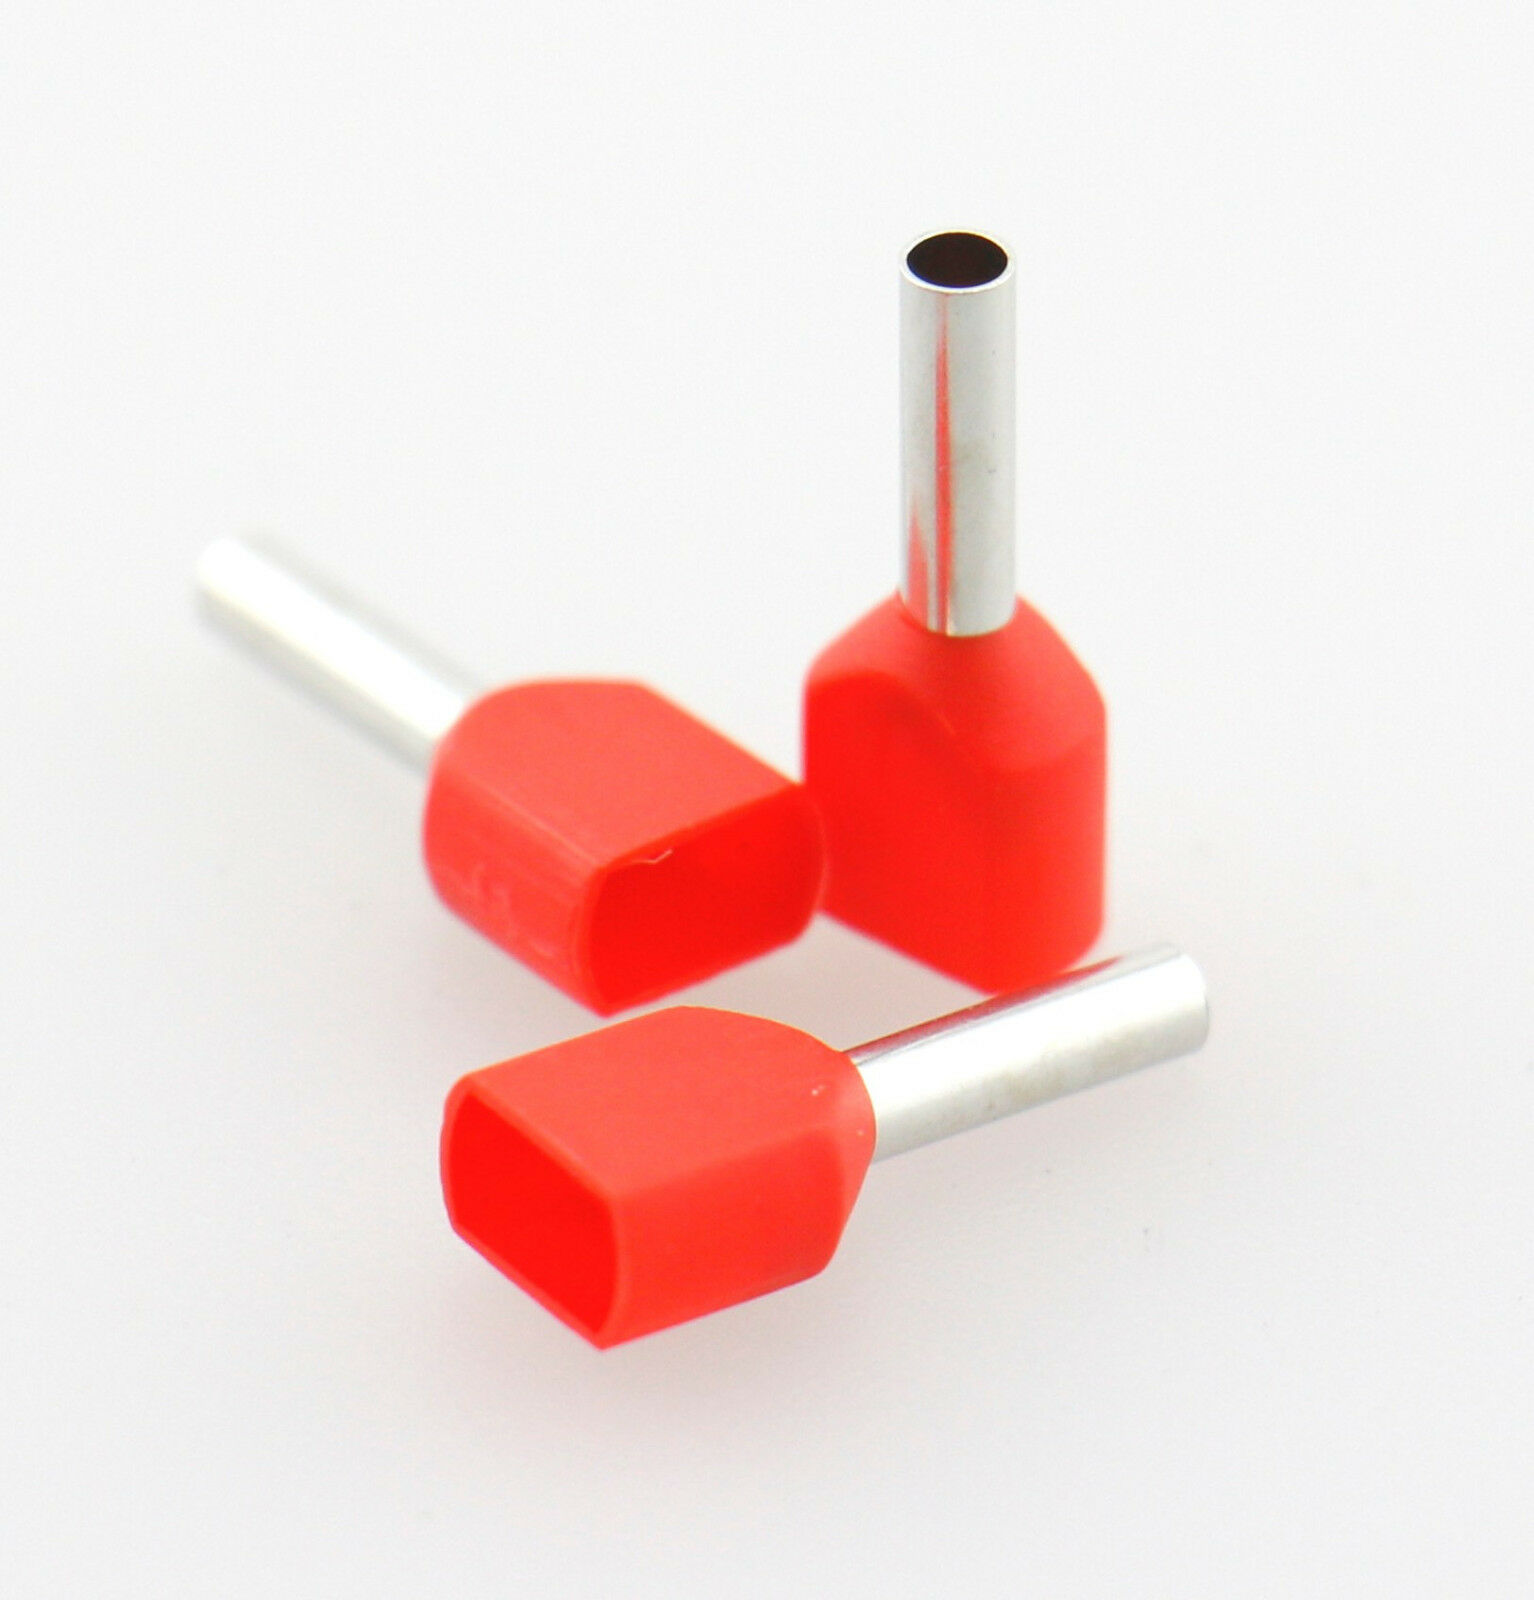 16awg Insulated Wire Ferrules Red Dual-wire Cord End Terminal ...